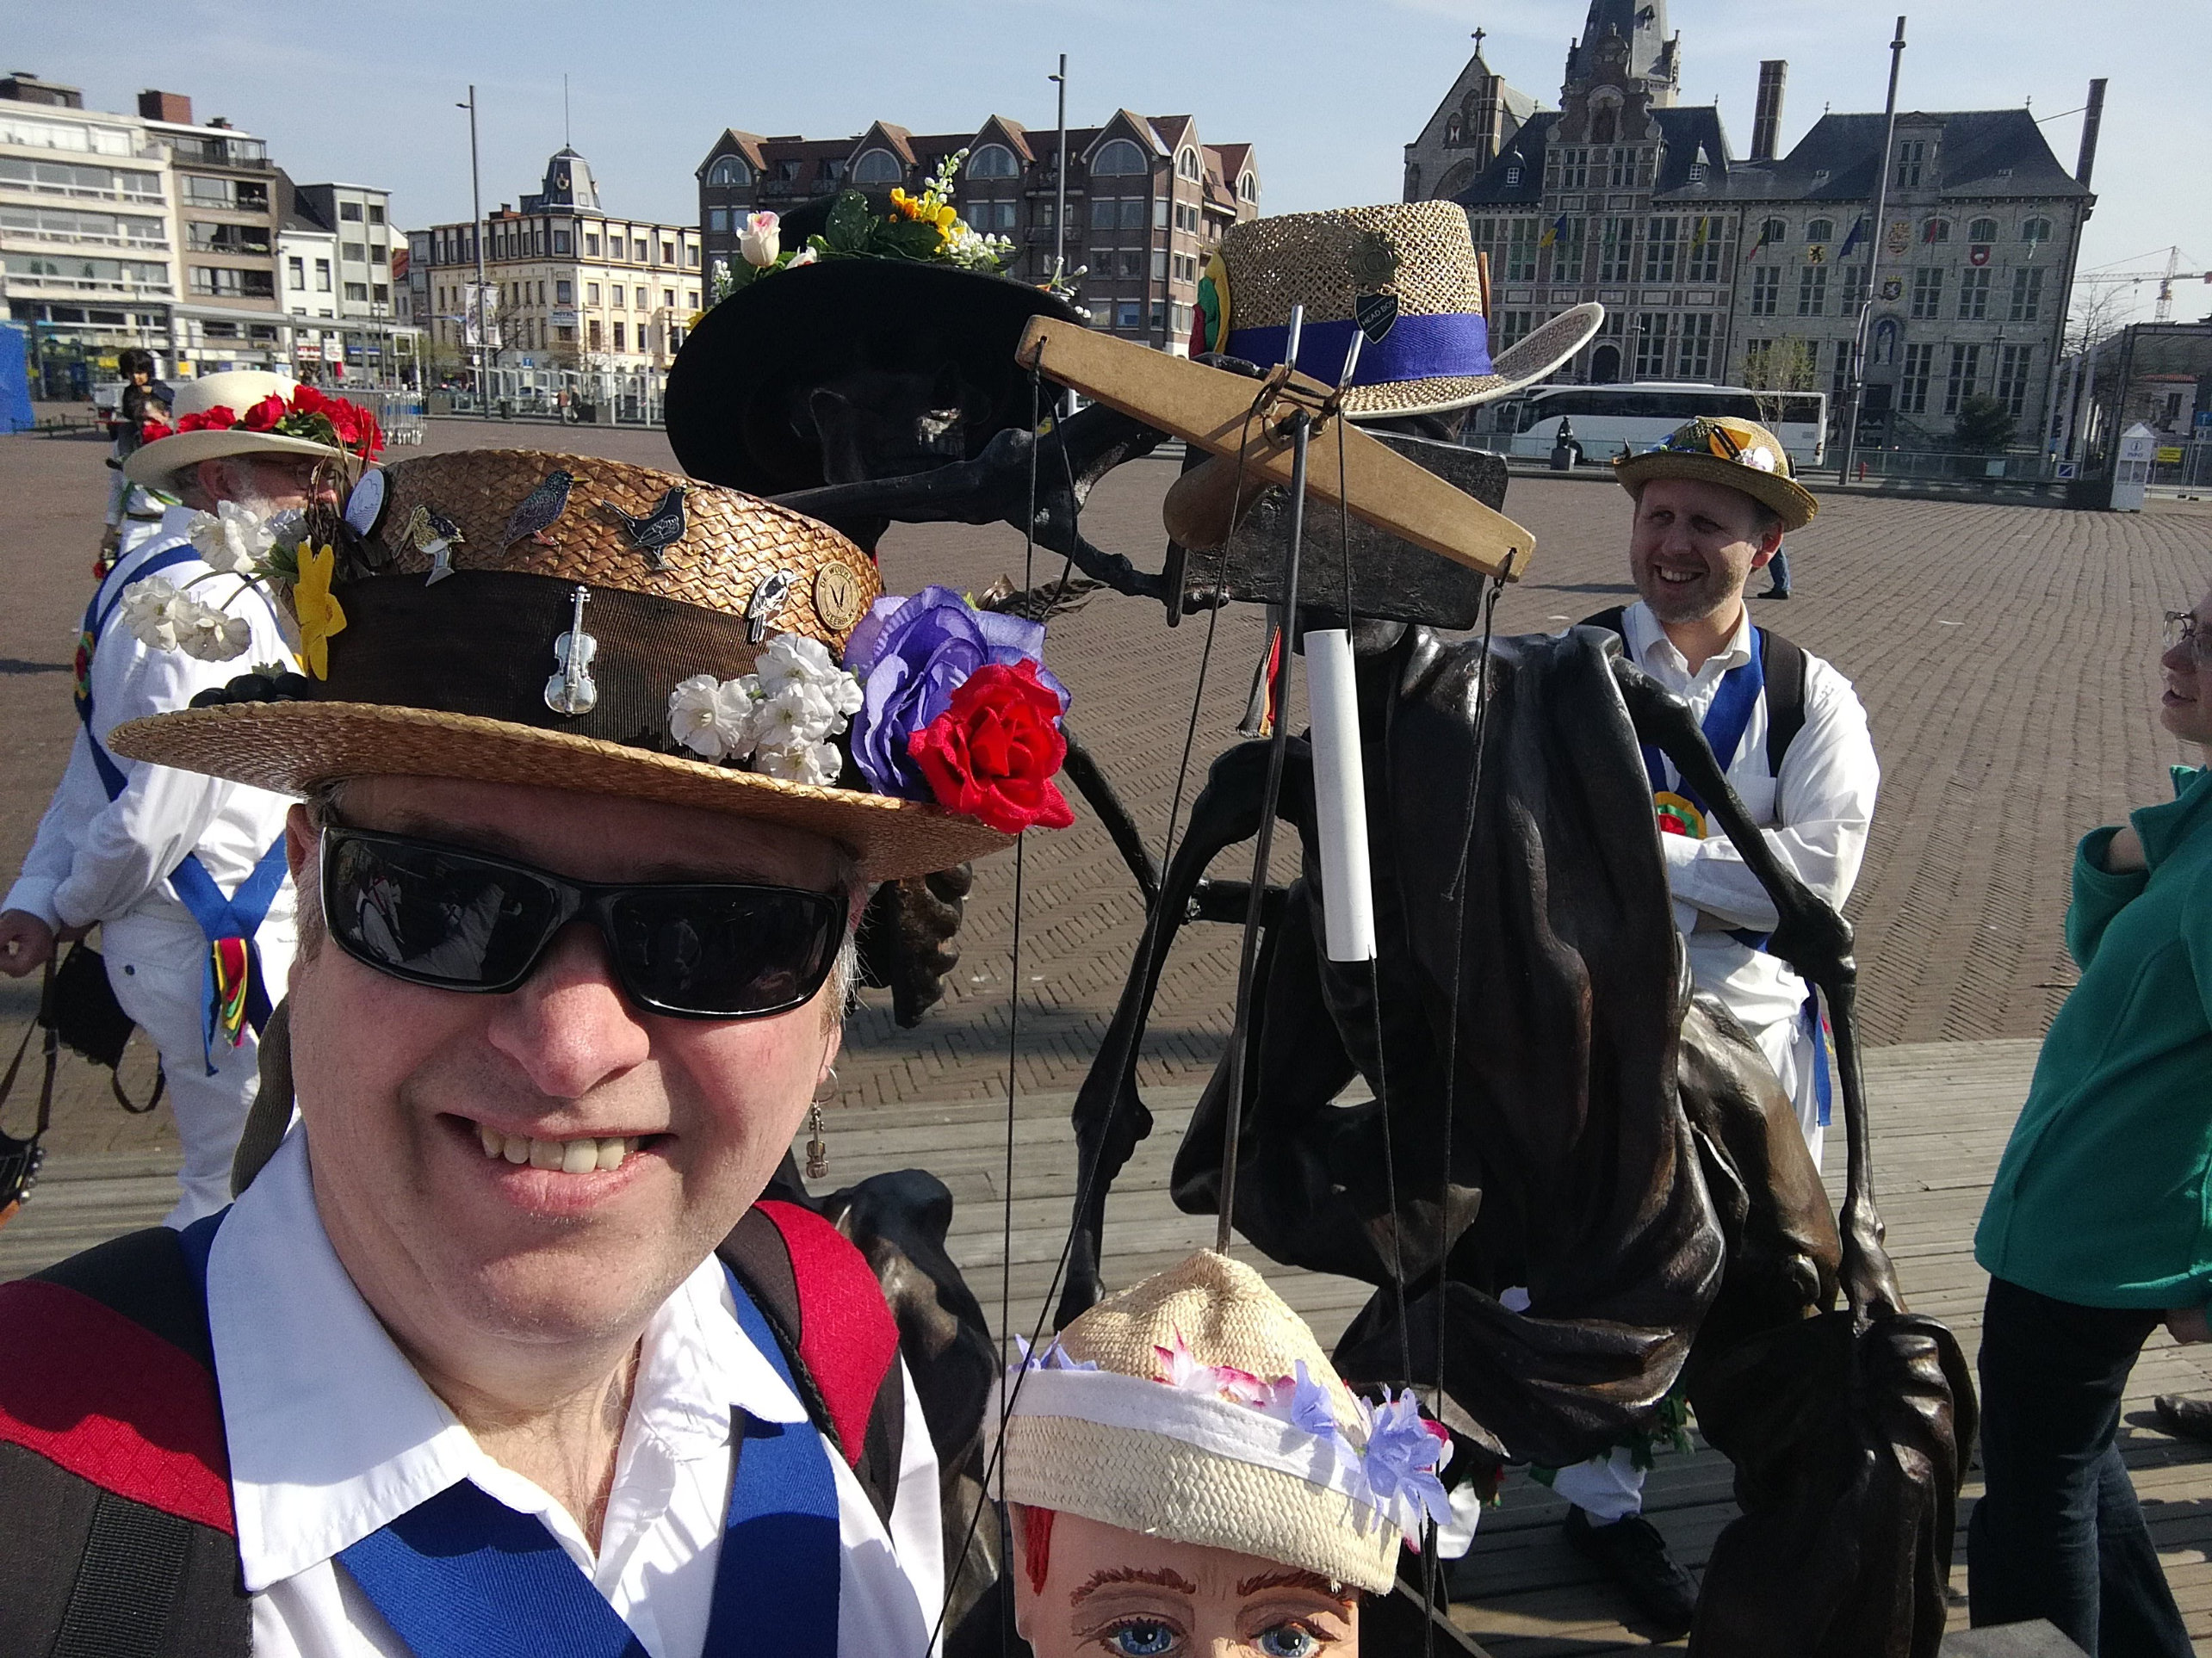 Little Pete and Fiddler check out the modern art in the town square in Sint Niklaas